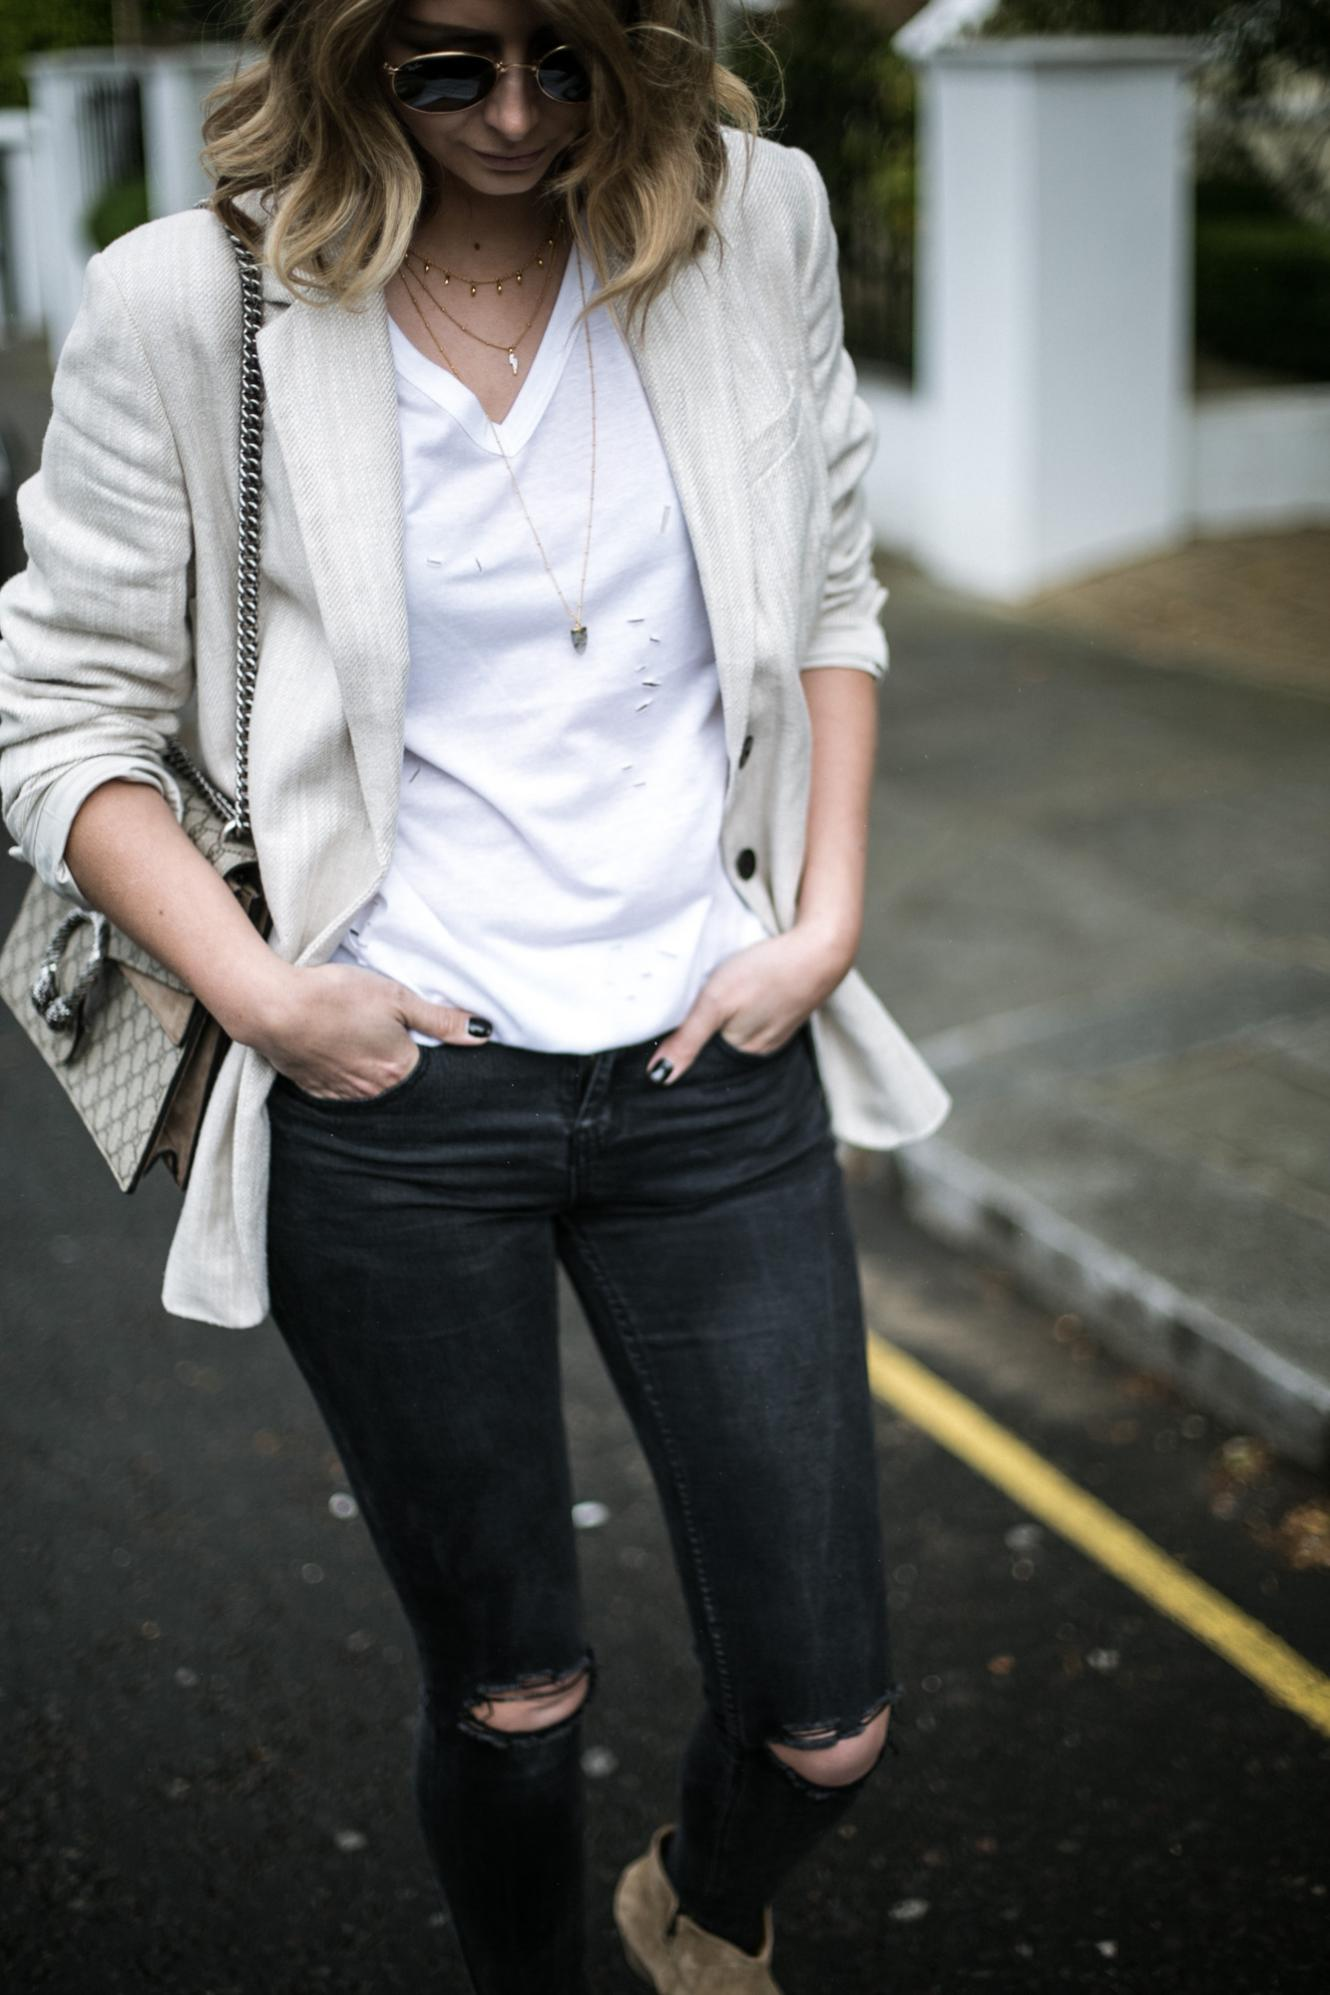 Emma Hill from EJSTYLE wears gold layered necklaces, white nibbled t-shirt, beige linen blazer, gold round Ray-Ban sunglasses, black skinny jeans with ripped knees